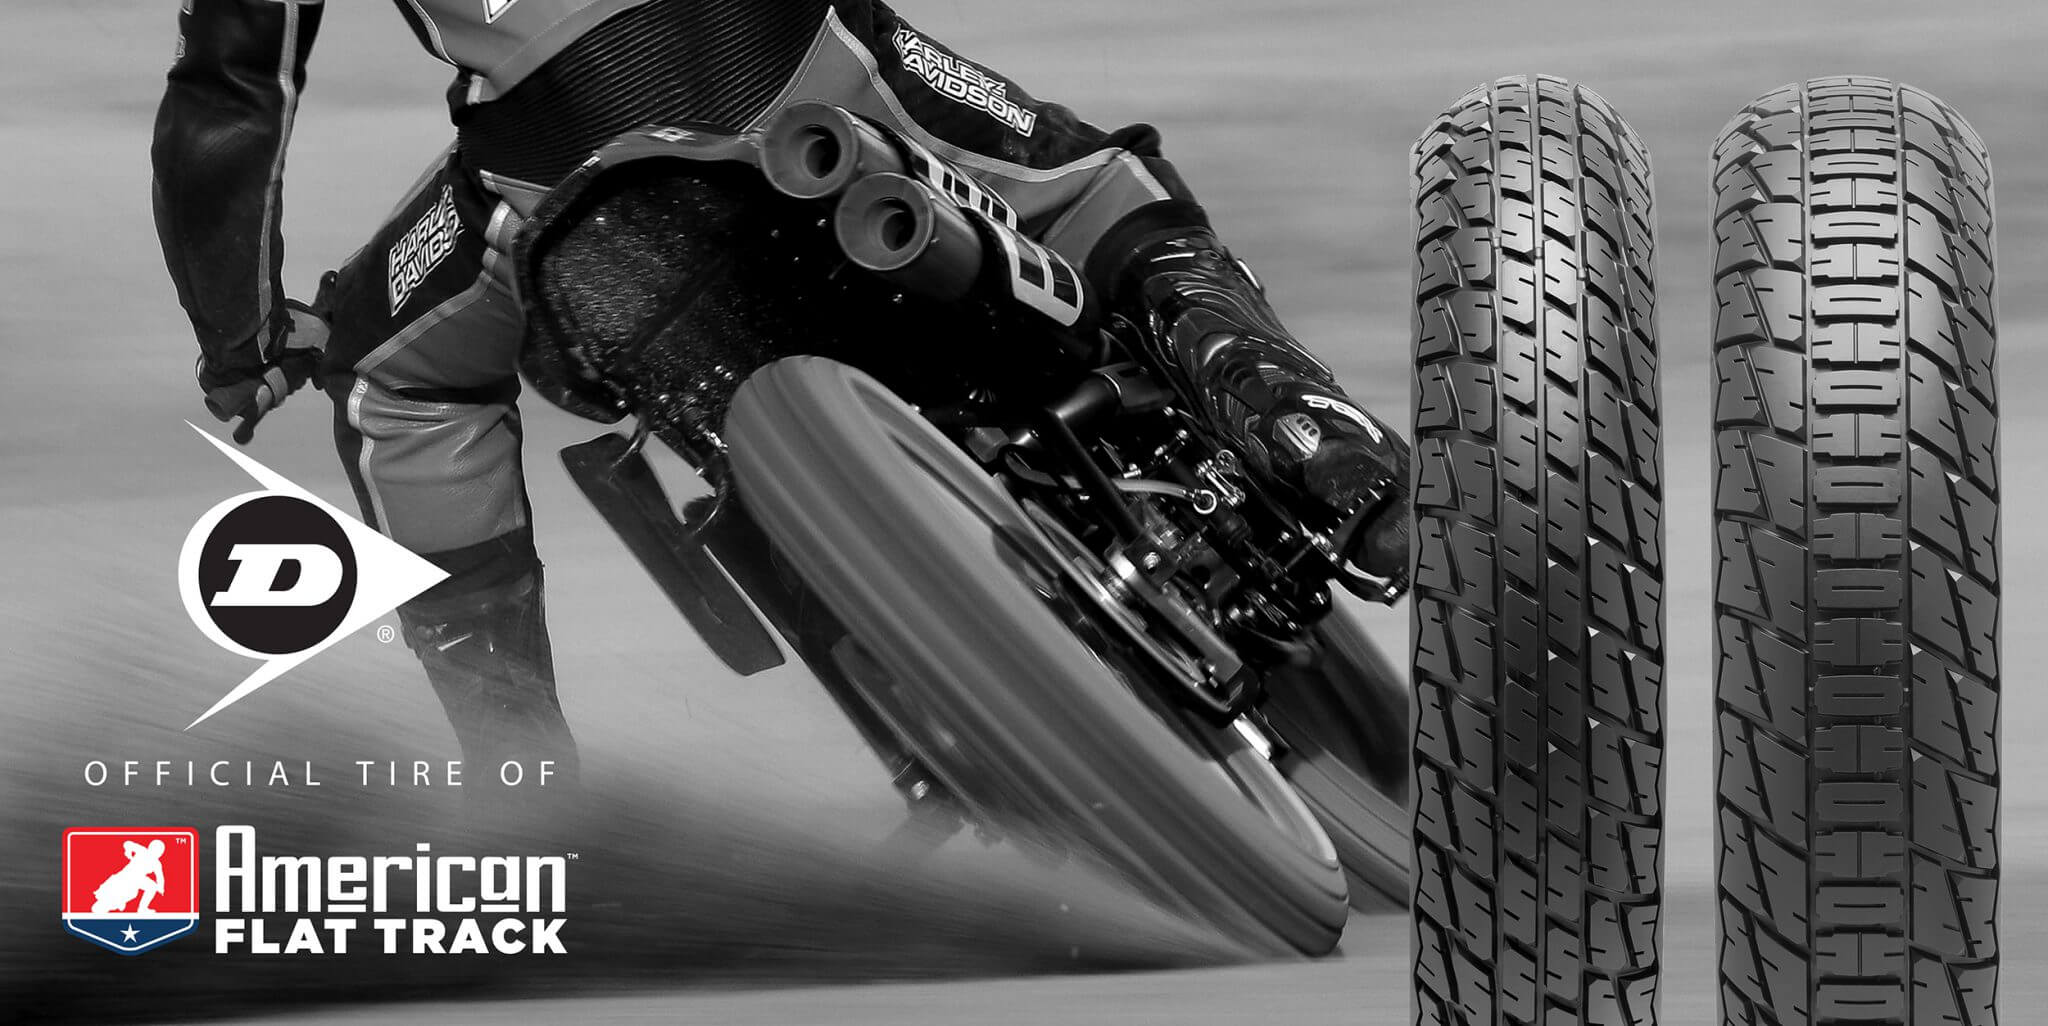 Official Tire of American Flat Track motorcycle tires